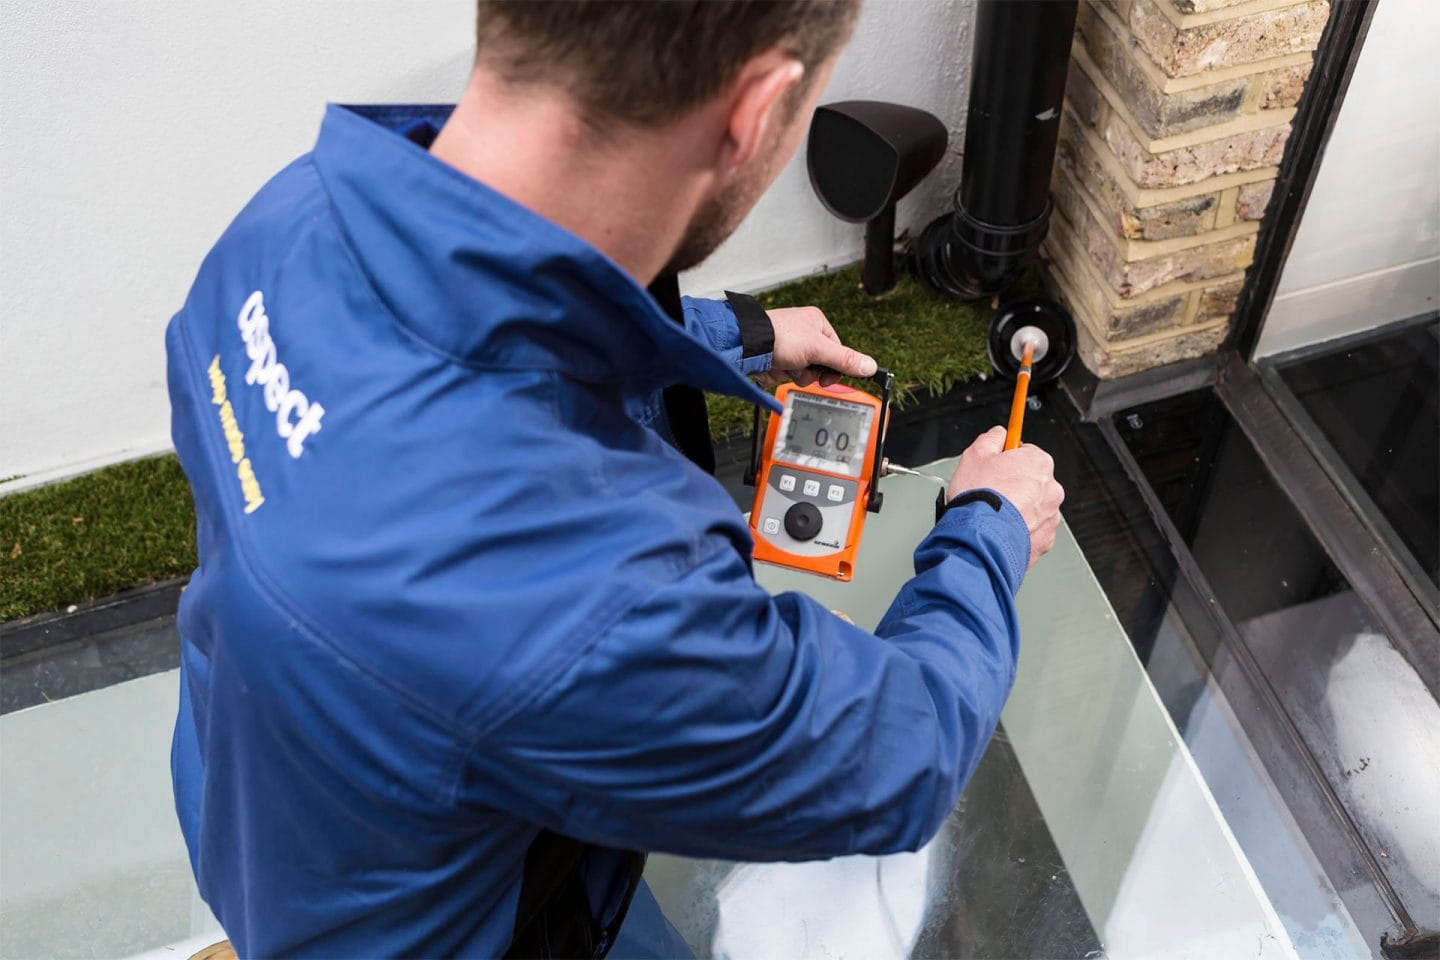 Plumbing and rain water leak detection in London